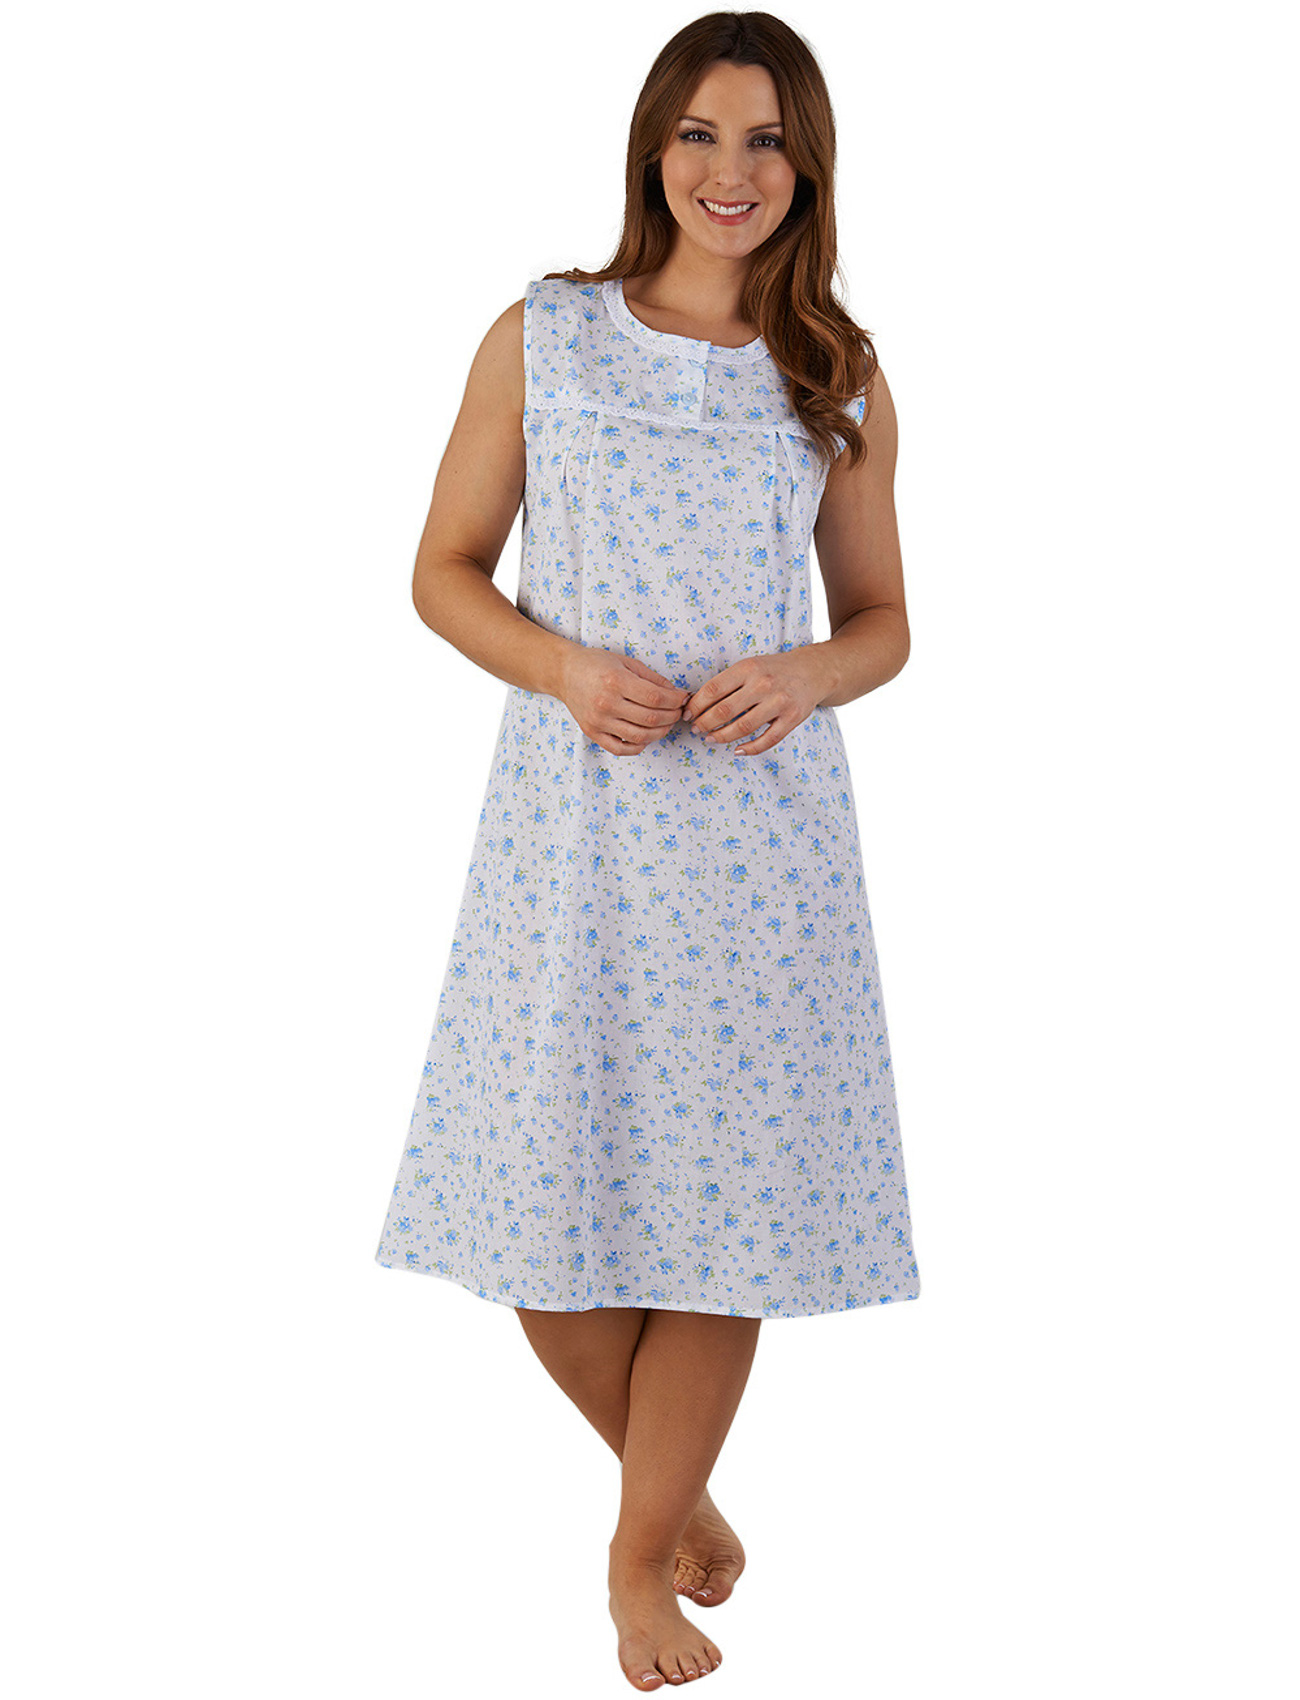 Ekouaer Sleepwear Womens Chemise Nightgown Full Slip Lace Lounge Dress. by Ekouaer. $ - $ $ 2 $ 16 99 Prime. FREE Shipping on eligible orders. Some sizes/colors are Prime eligible. out of 5 stars Product Features Comfy and versatile, as a slip under your clothes,or wear to bed as a nightie.